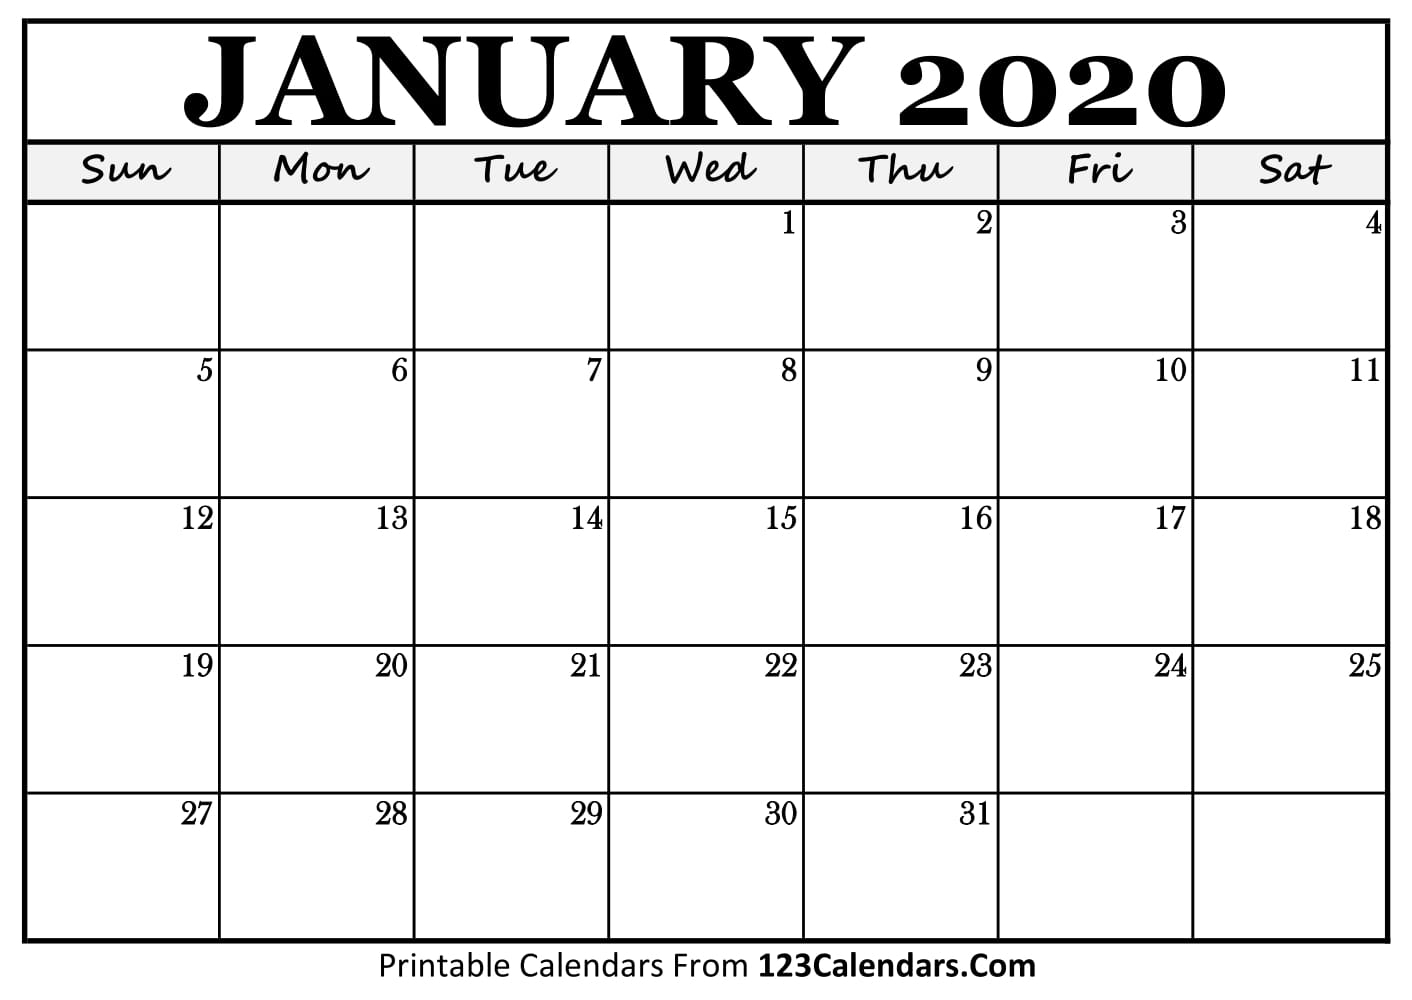 January 2020 Printable Calendar | 123Calendars in 2020 Fill In Calendar